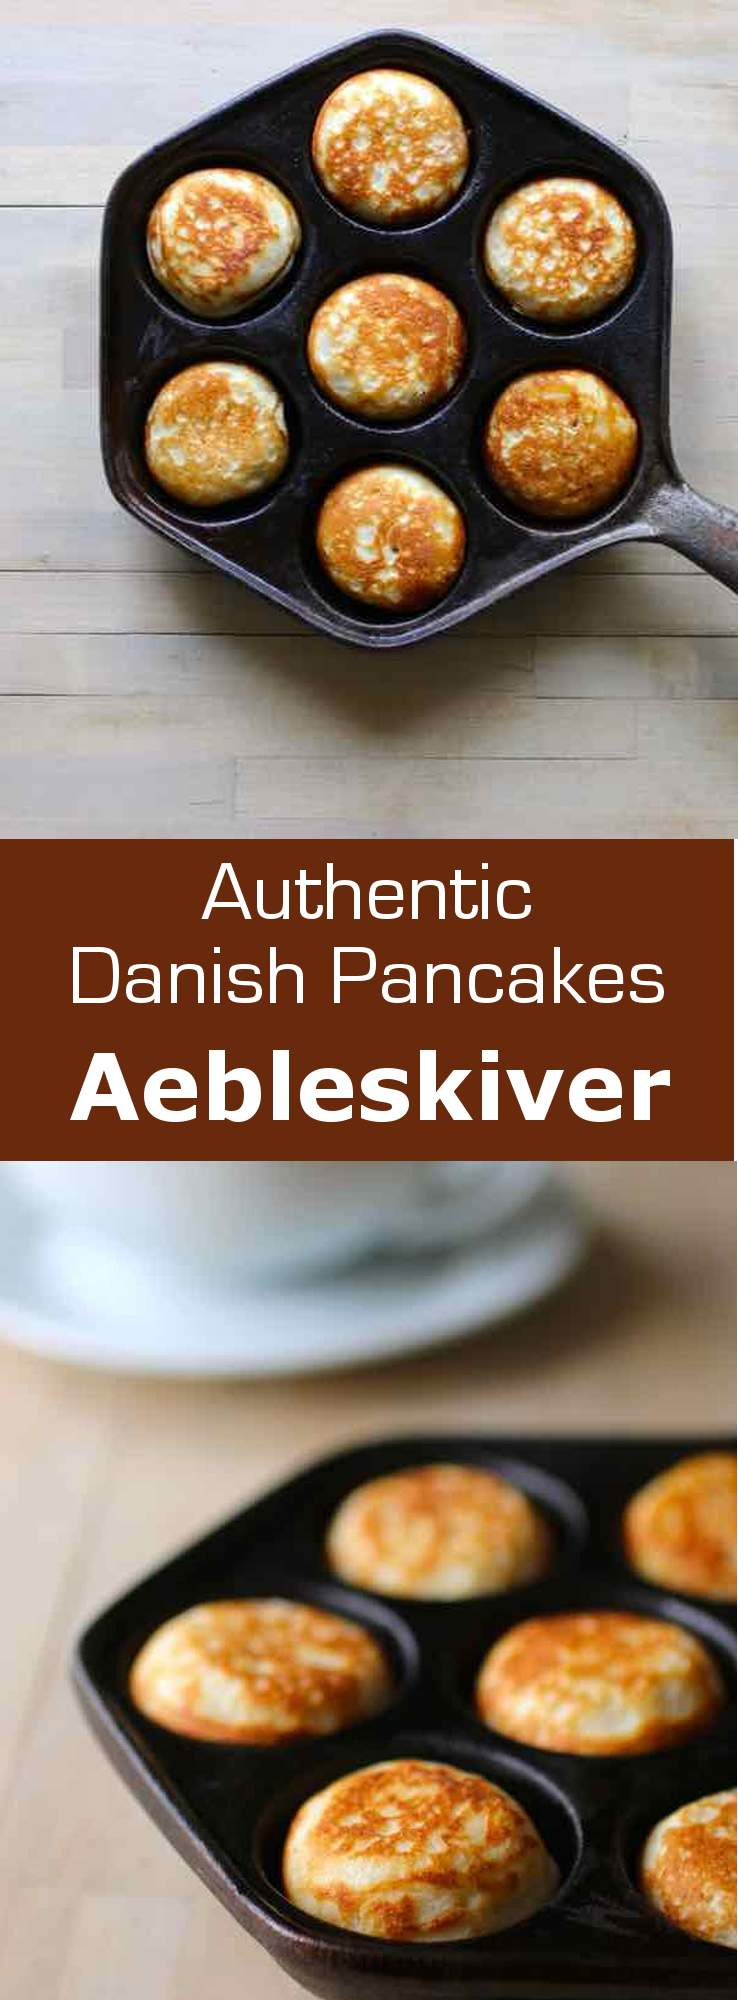 Aebleskiver are traditional Danish pancakes that are cooked in a special stovetop pan with half-spherical molds. #Denmark #pancake #Scandinavian #196flavors